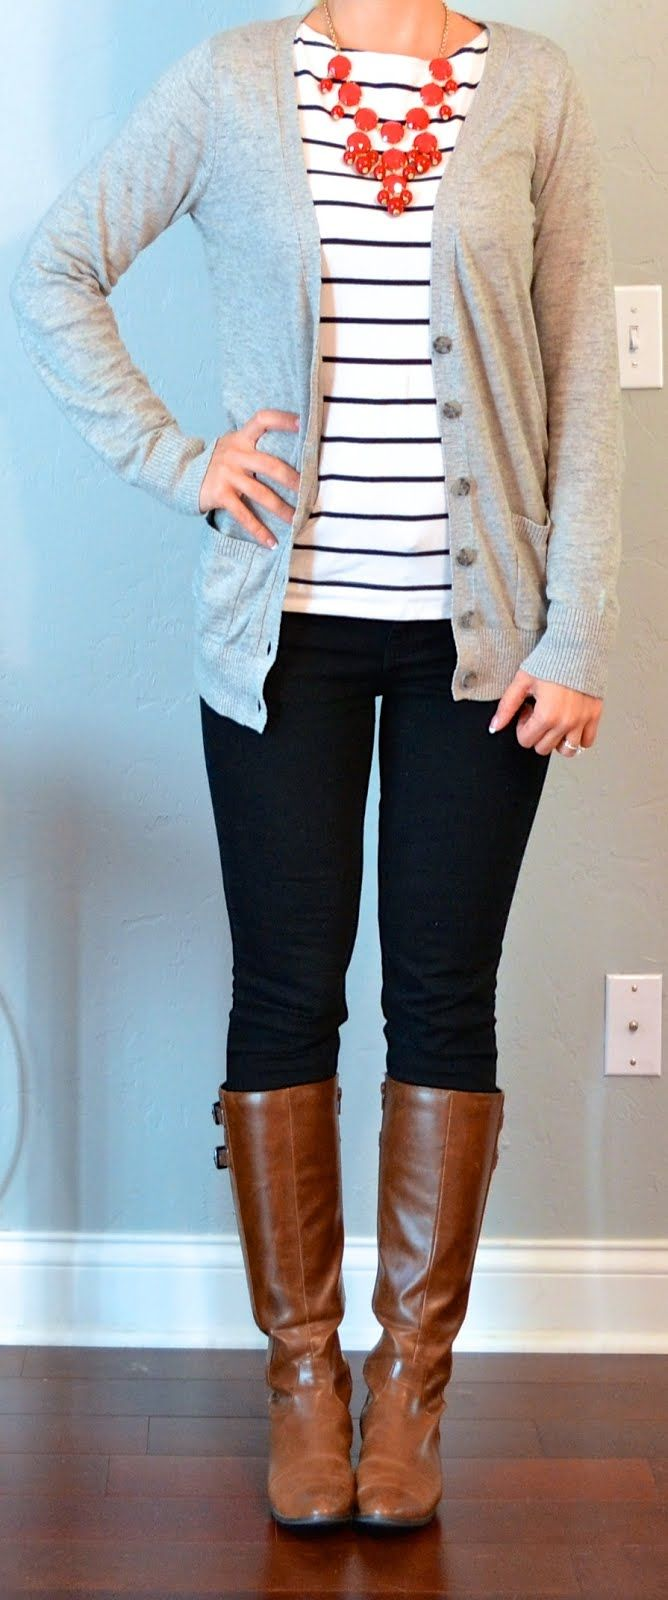 White and black striped shirt, light gray cardigan, jeans, brown riding boots, and red bubble necklace.